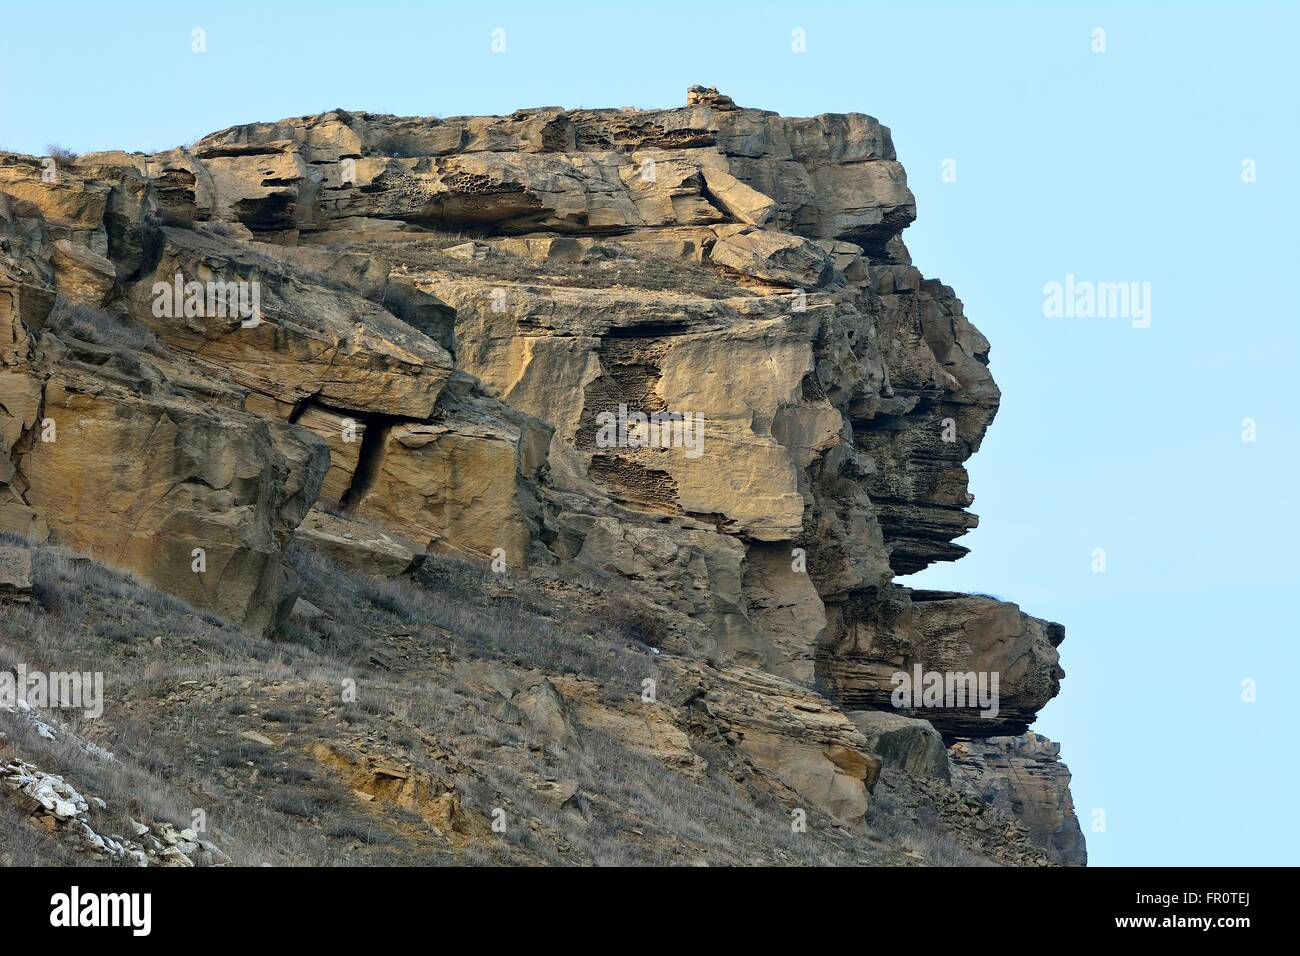 Rock formation shaped like a head. Natural formation resembling an Easter Island head in hills to the west of Baku, - Stock Image